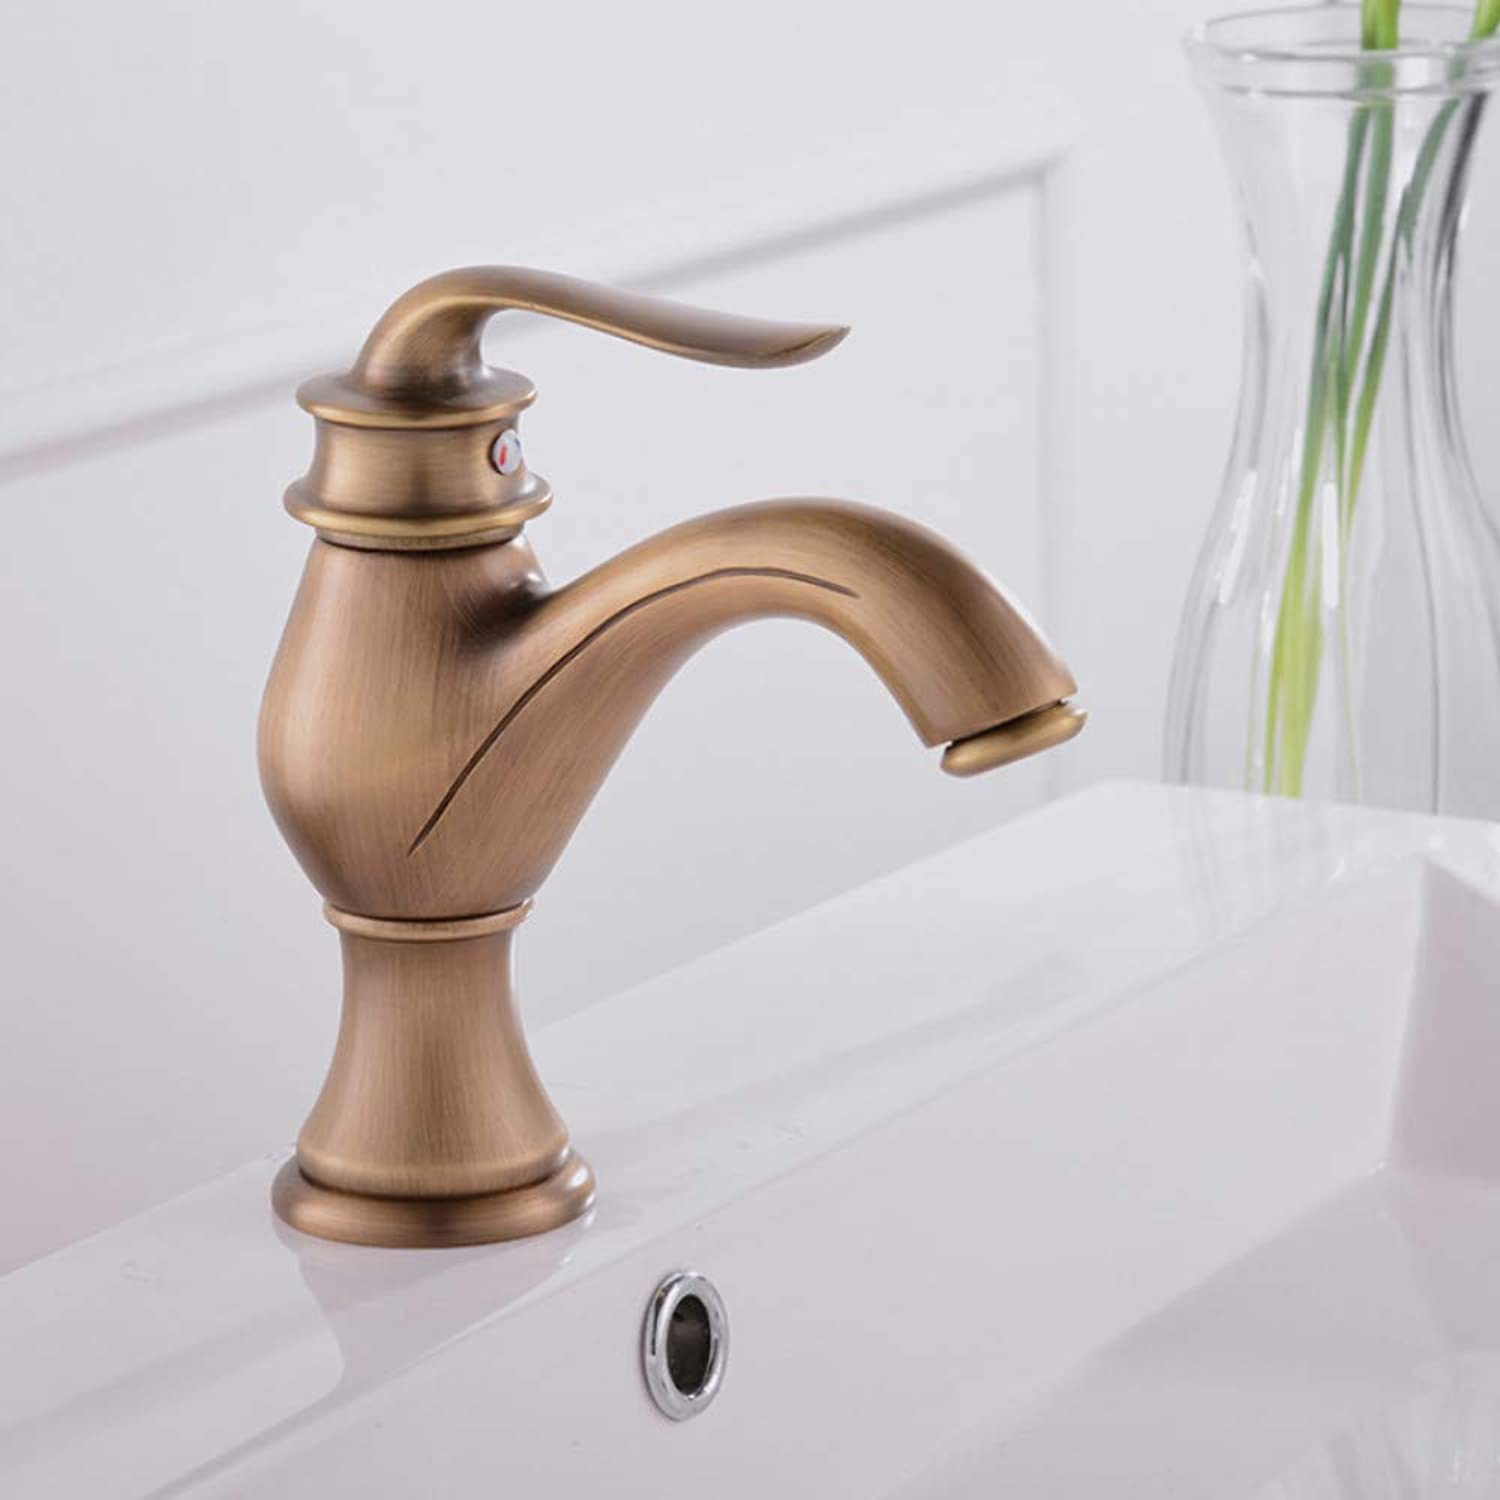 Ayhuir Basin Faucets Brass gold Bathroom Sink Faucet Single Lever Bath Wash Cold Hot Water Mixer Tap Wc Cock